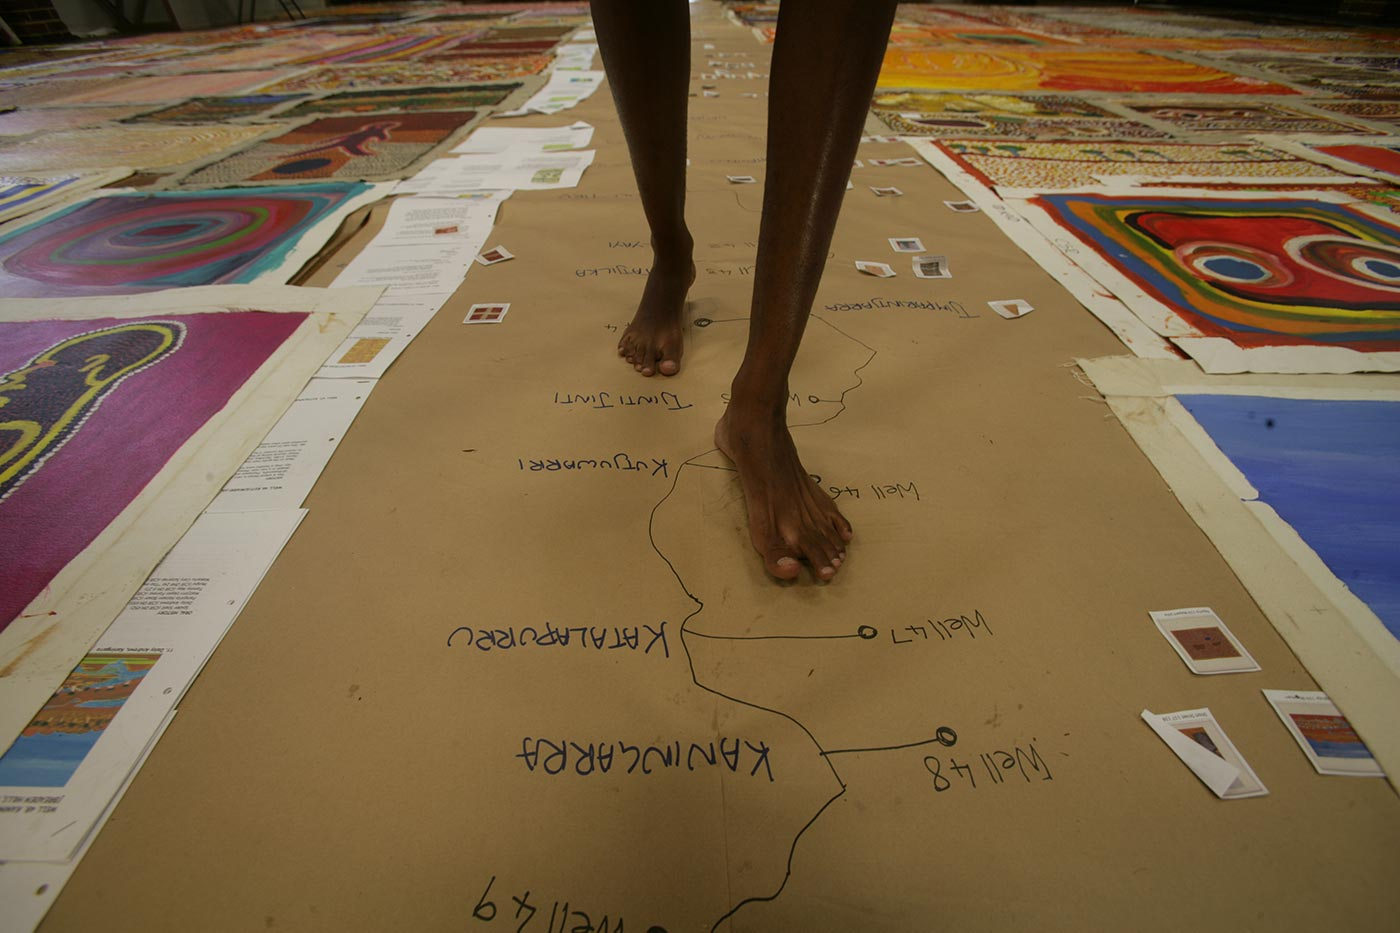 Colour photograph of bare feet walking across an image of a map route on the floor.